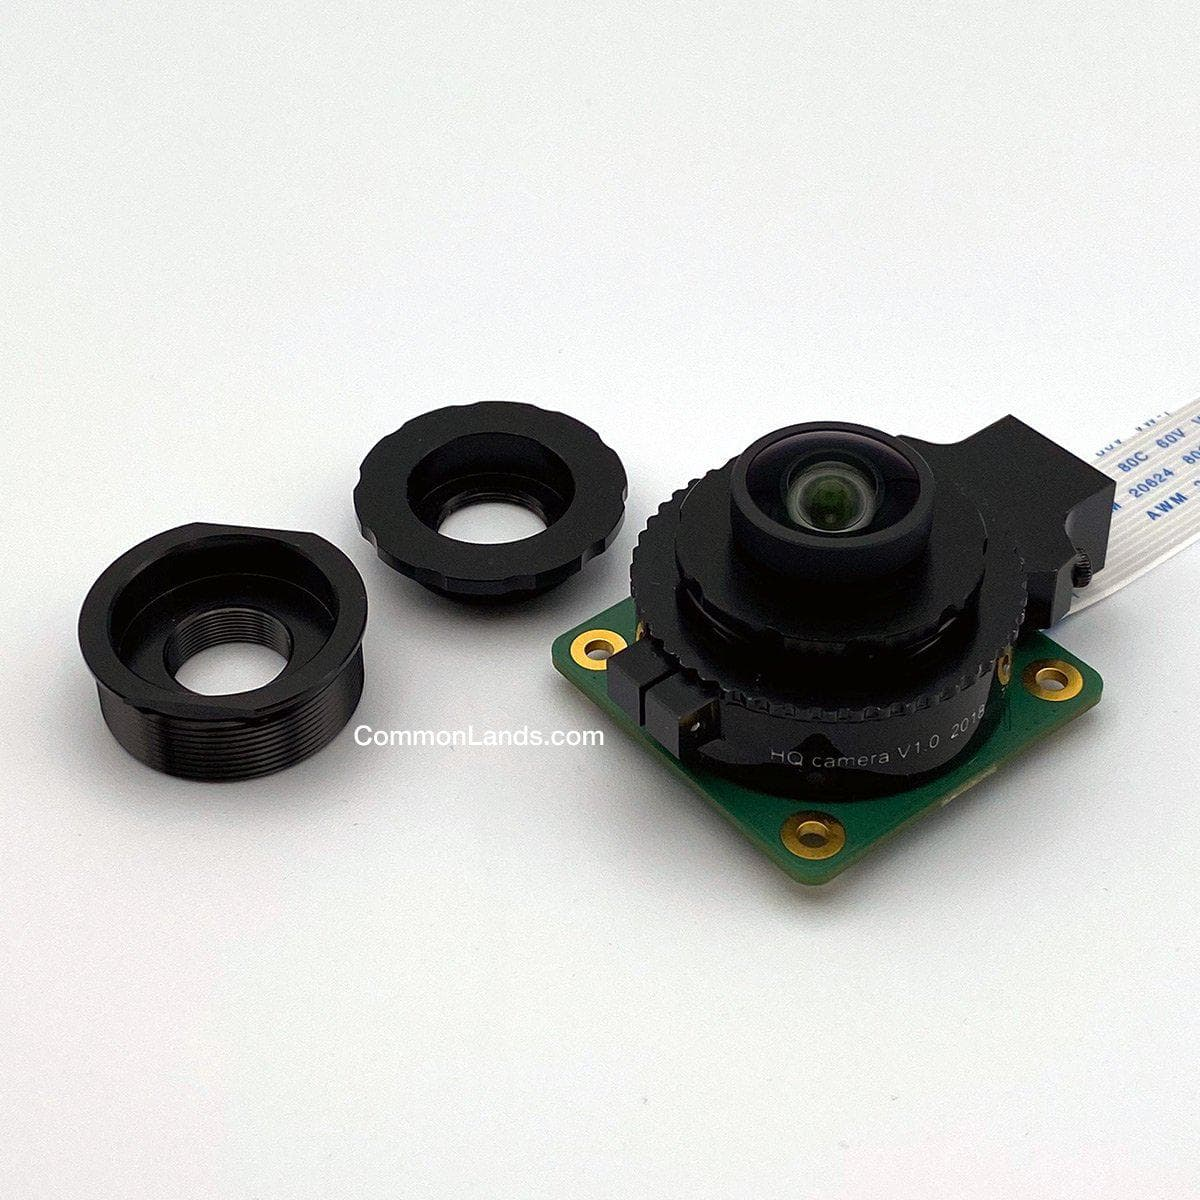 An M12 to CS mount adapter for S Mount Lenses and the Raspberry Pi High Quality.